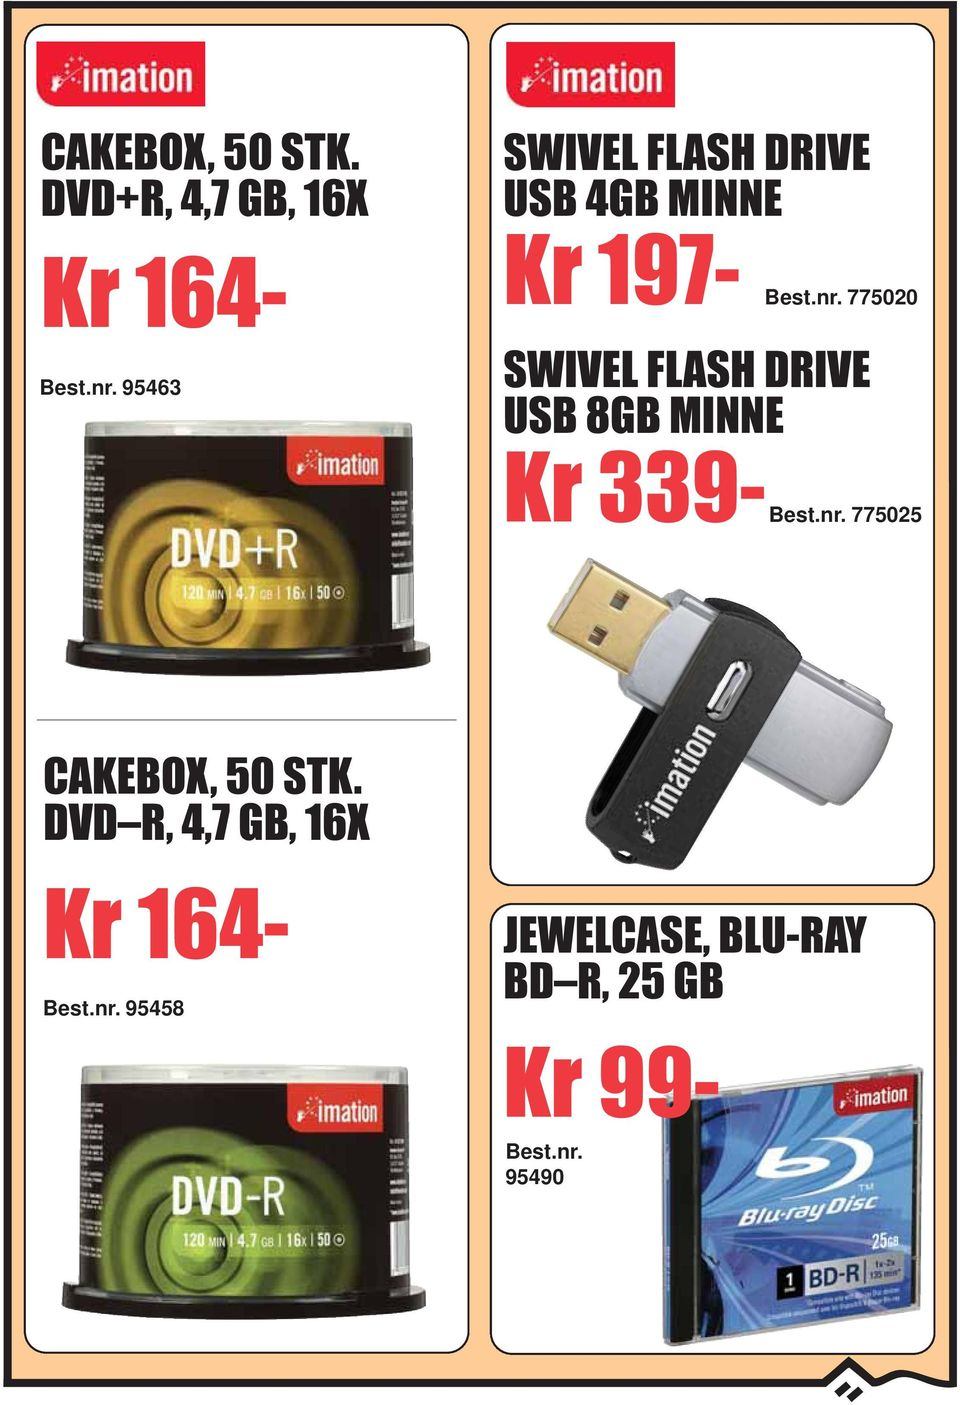 MINNE Kr 197-775020 SWIVEL FLASH DRIVE USB 8GB MINNE Kr